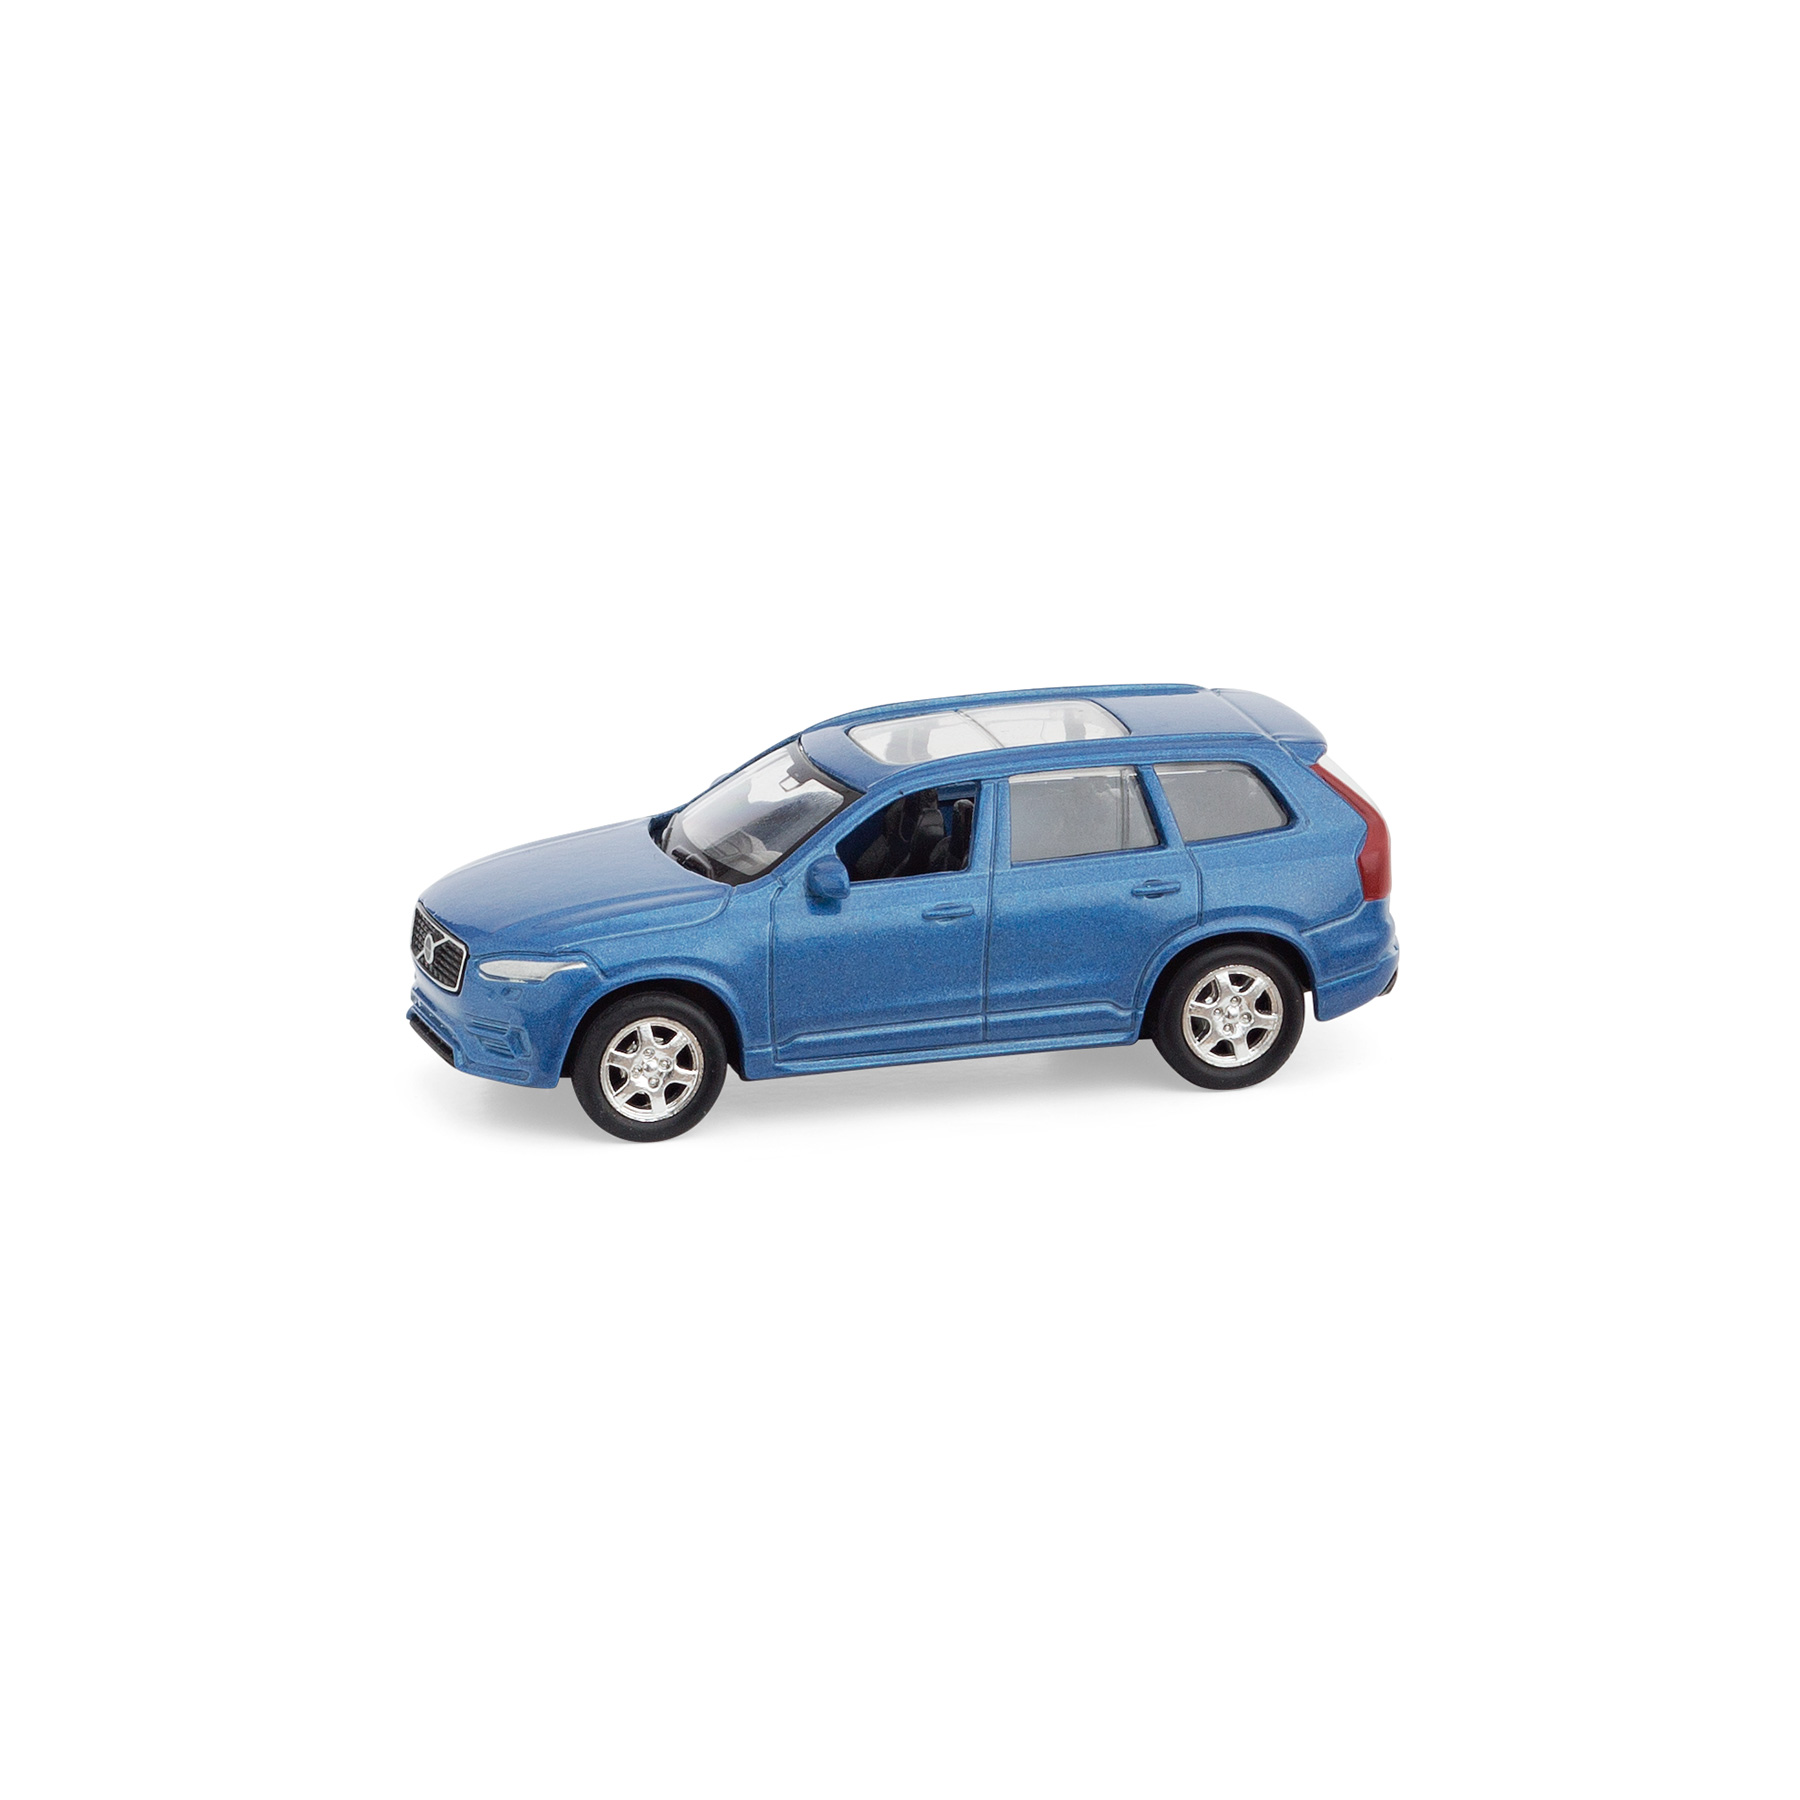 Volvo Car Lifestyle Collection Shop. XC90 Toy Car 1:60